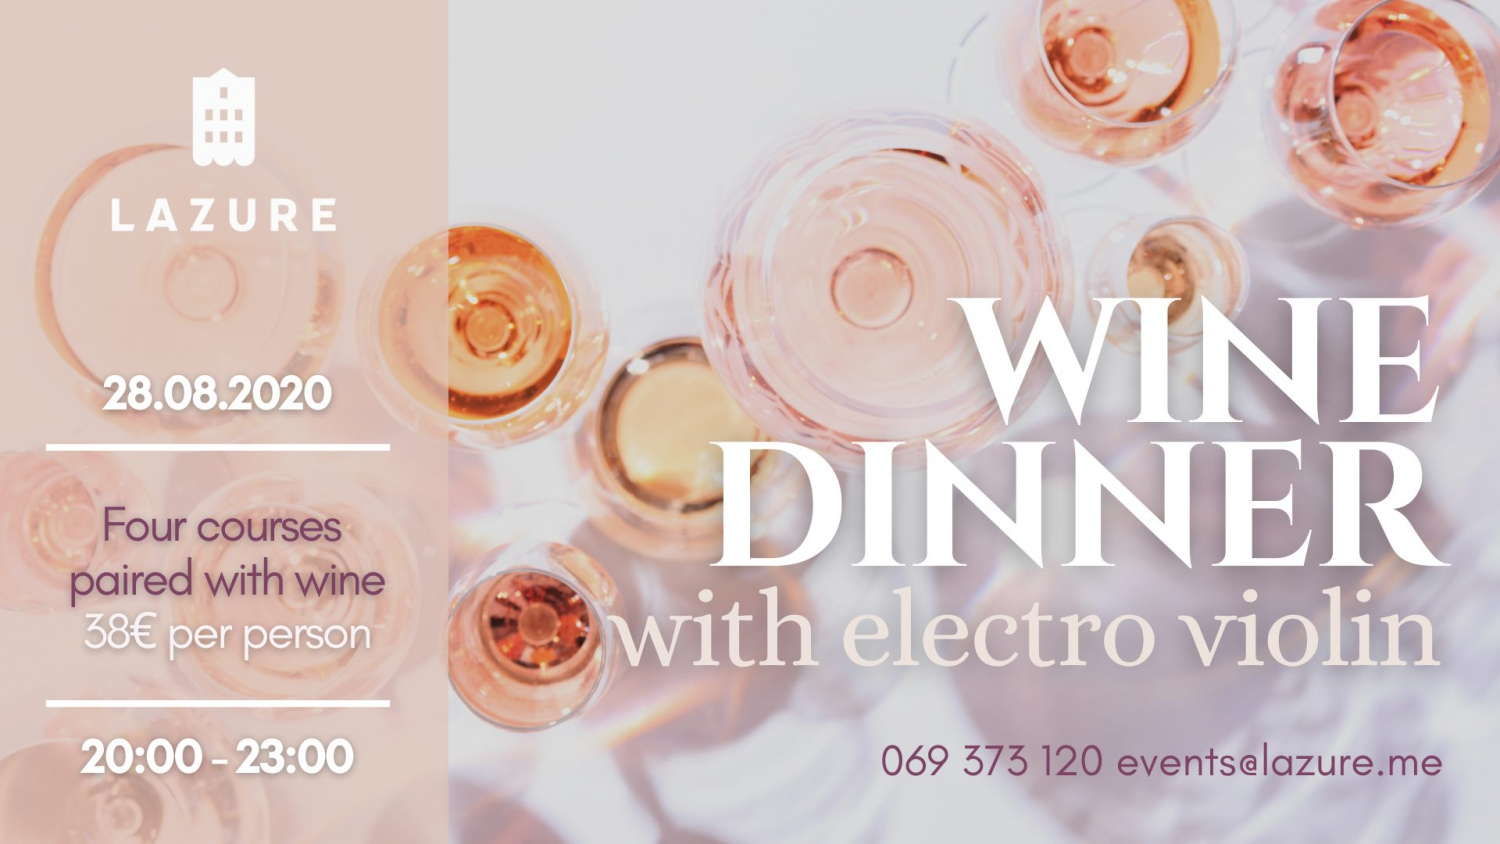 Wine Dinner with Electro Violin at Lazure Hotel